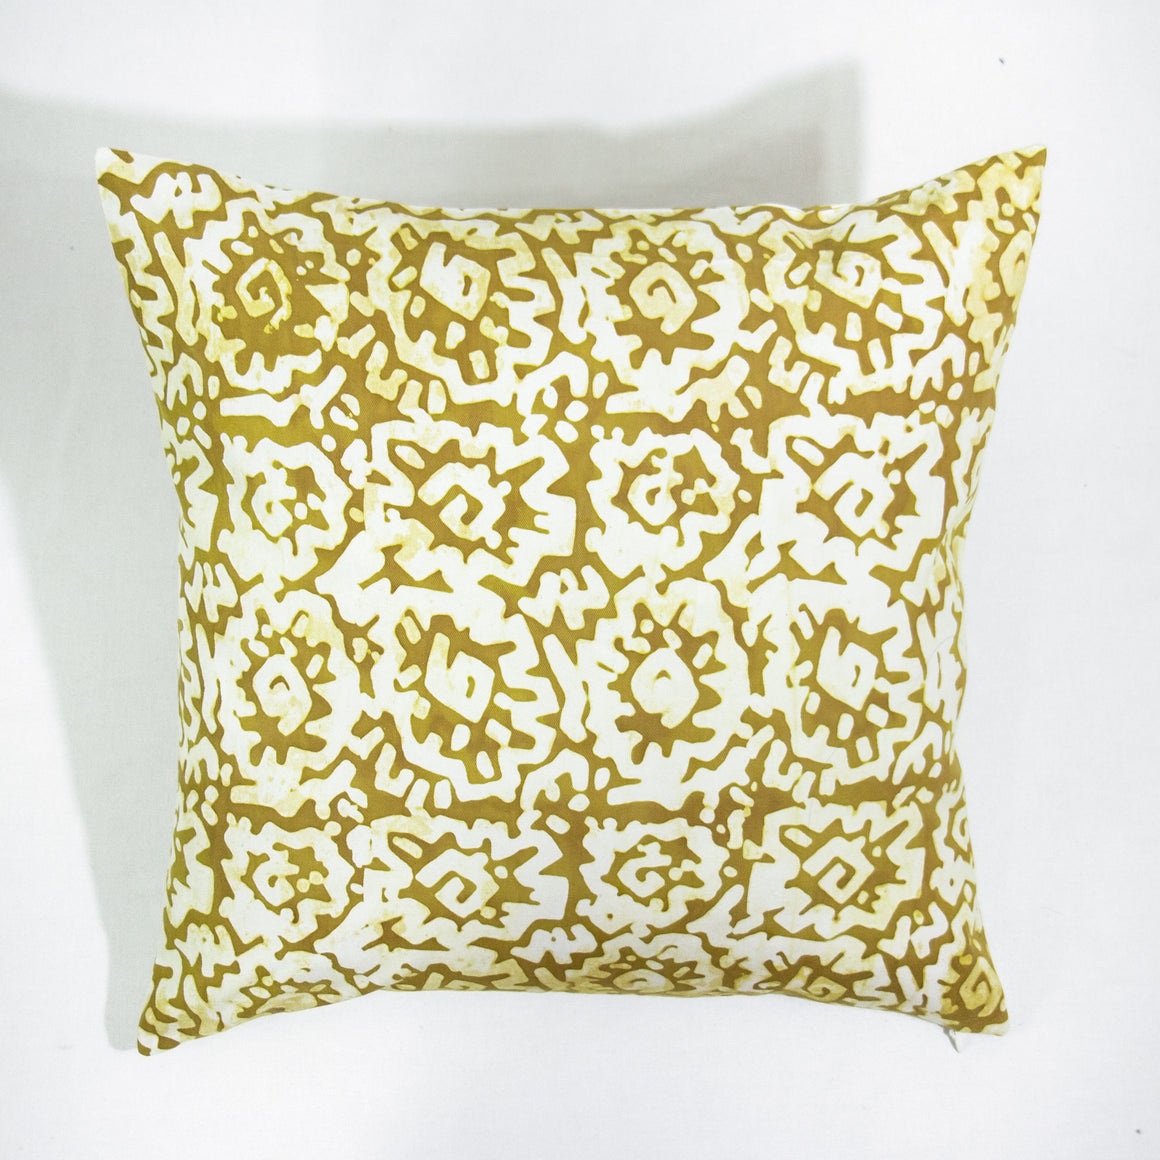 Accent Pillows - Hand Painted - Spring Fever Collection